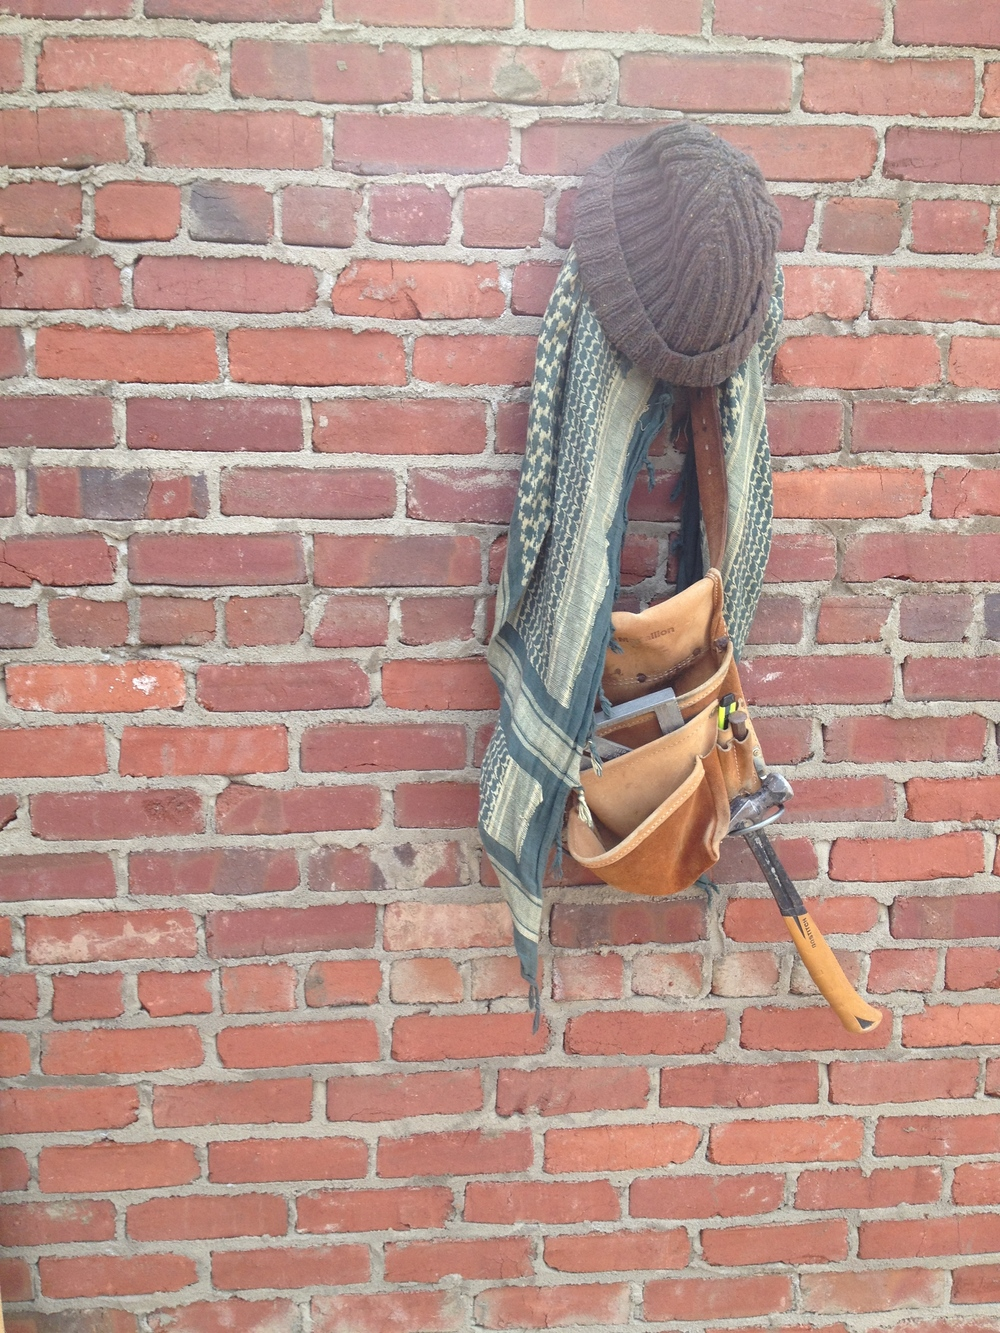 structural masonry, common bond hat rack.